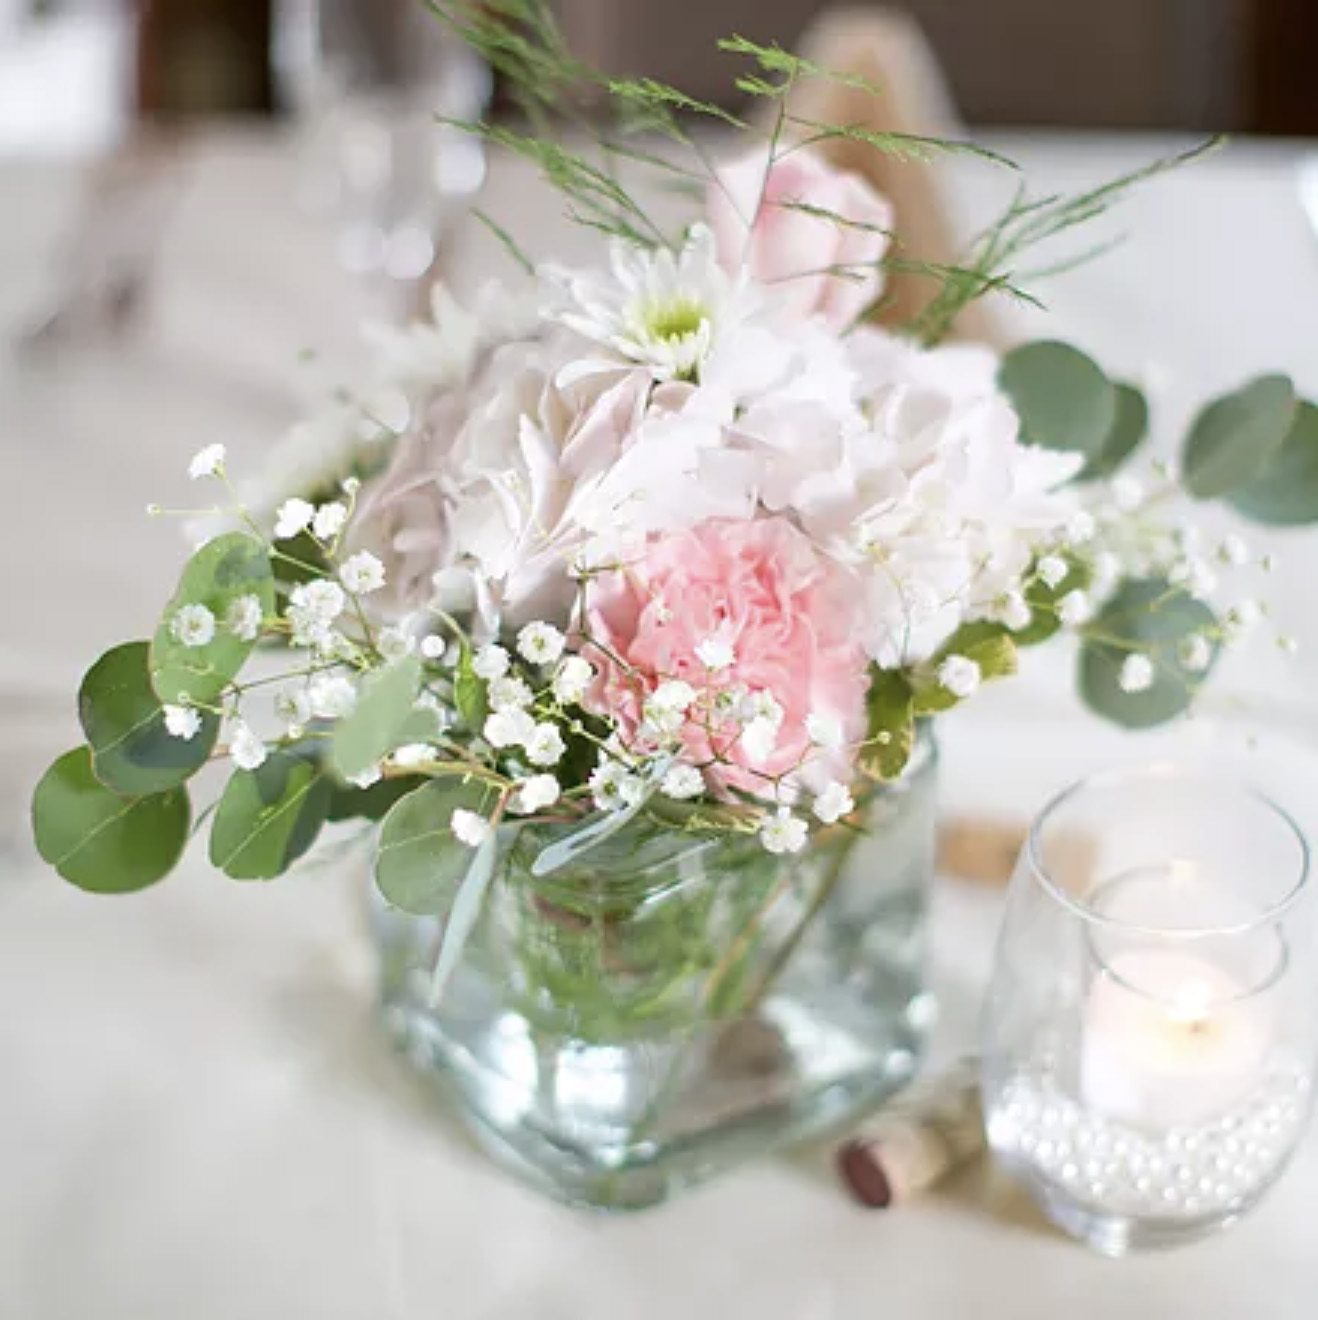 wedding flowers for reception table centerpiece